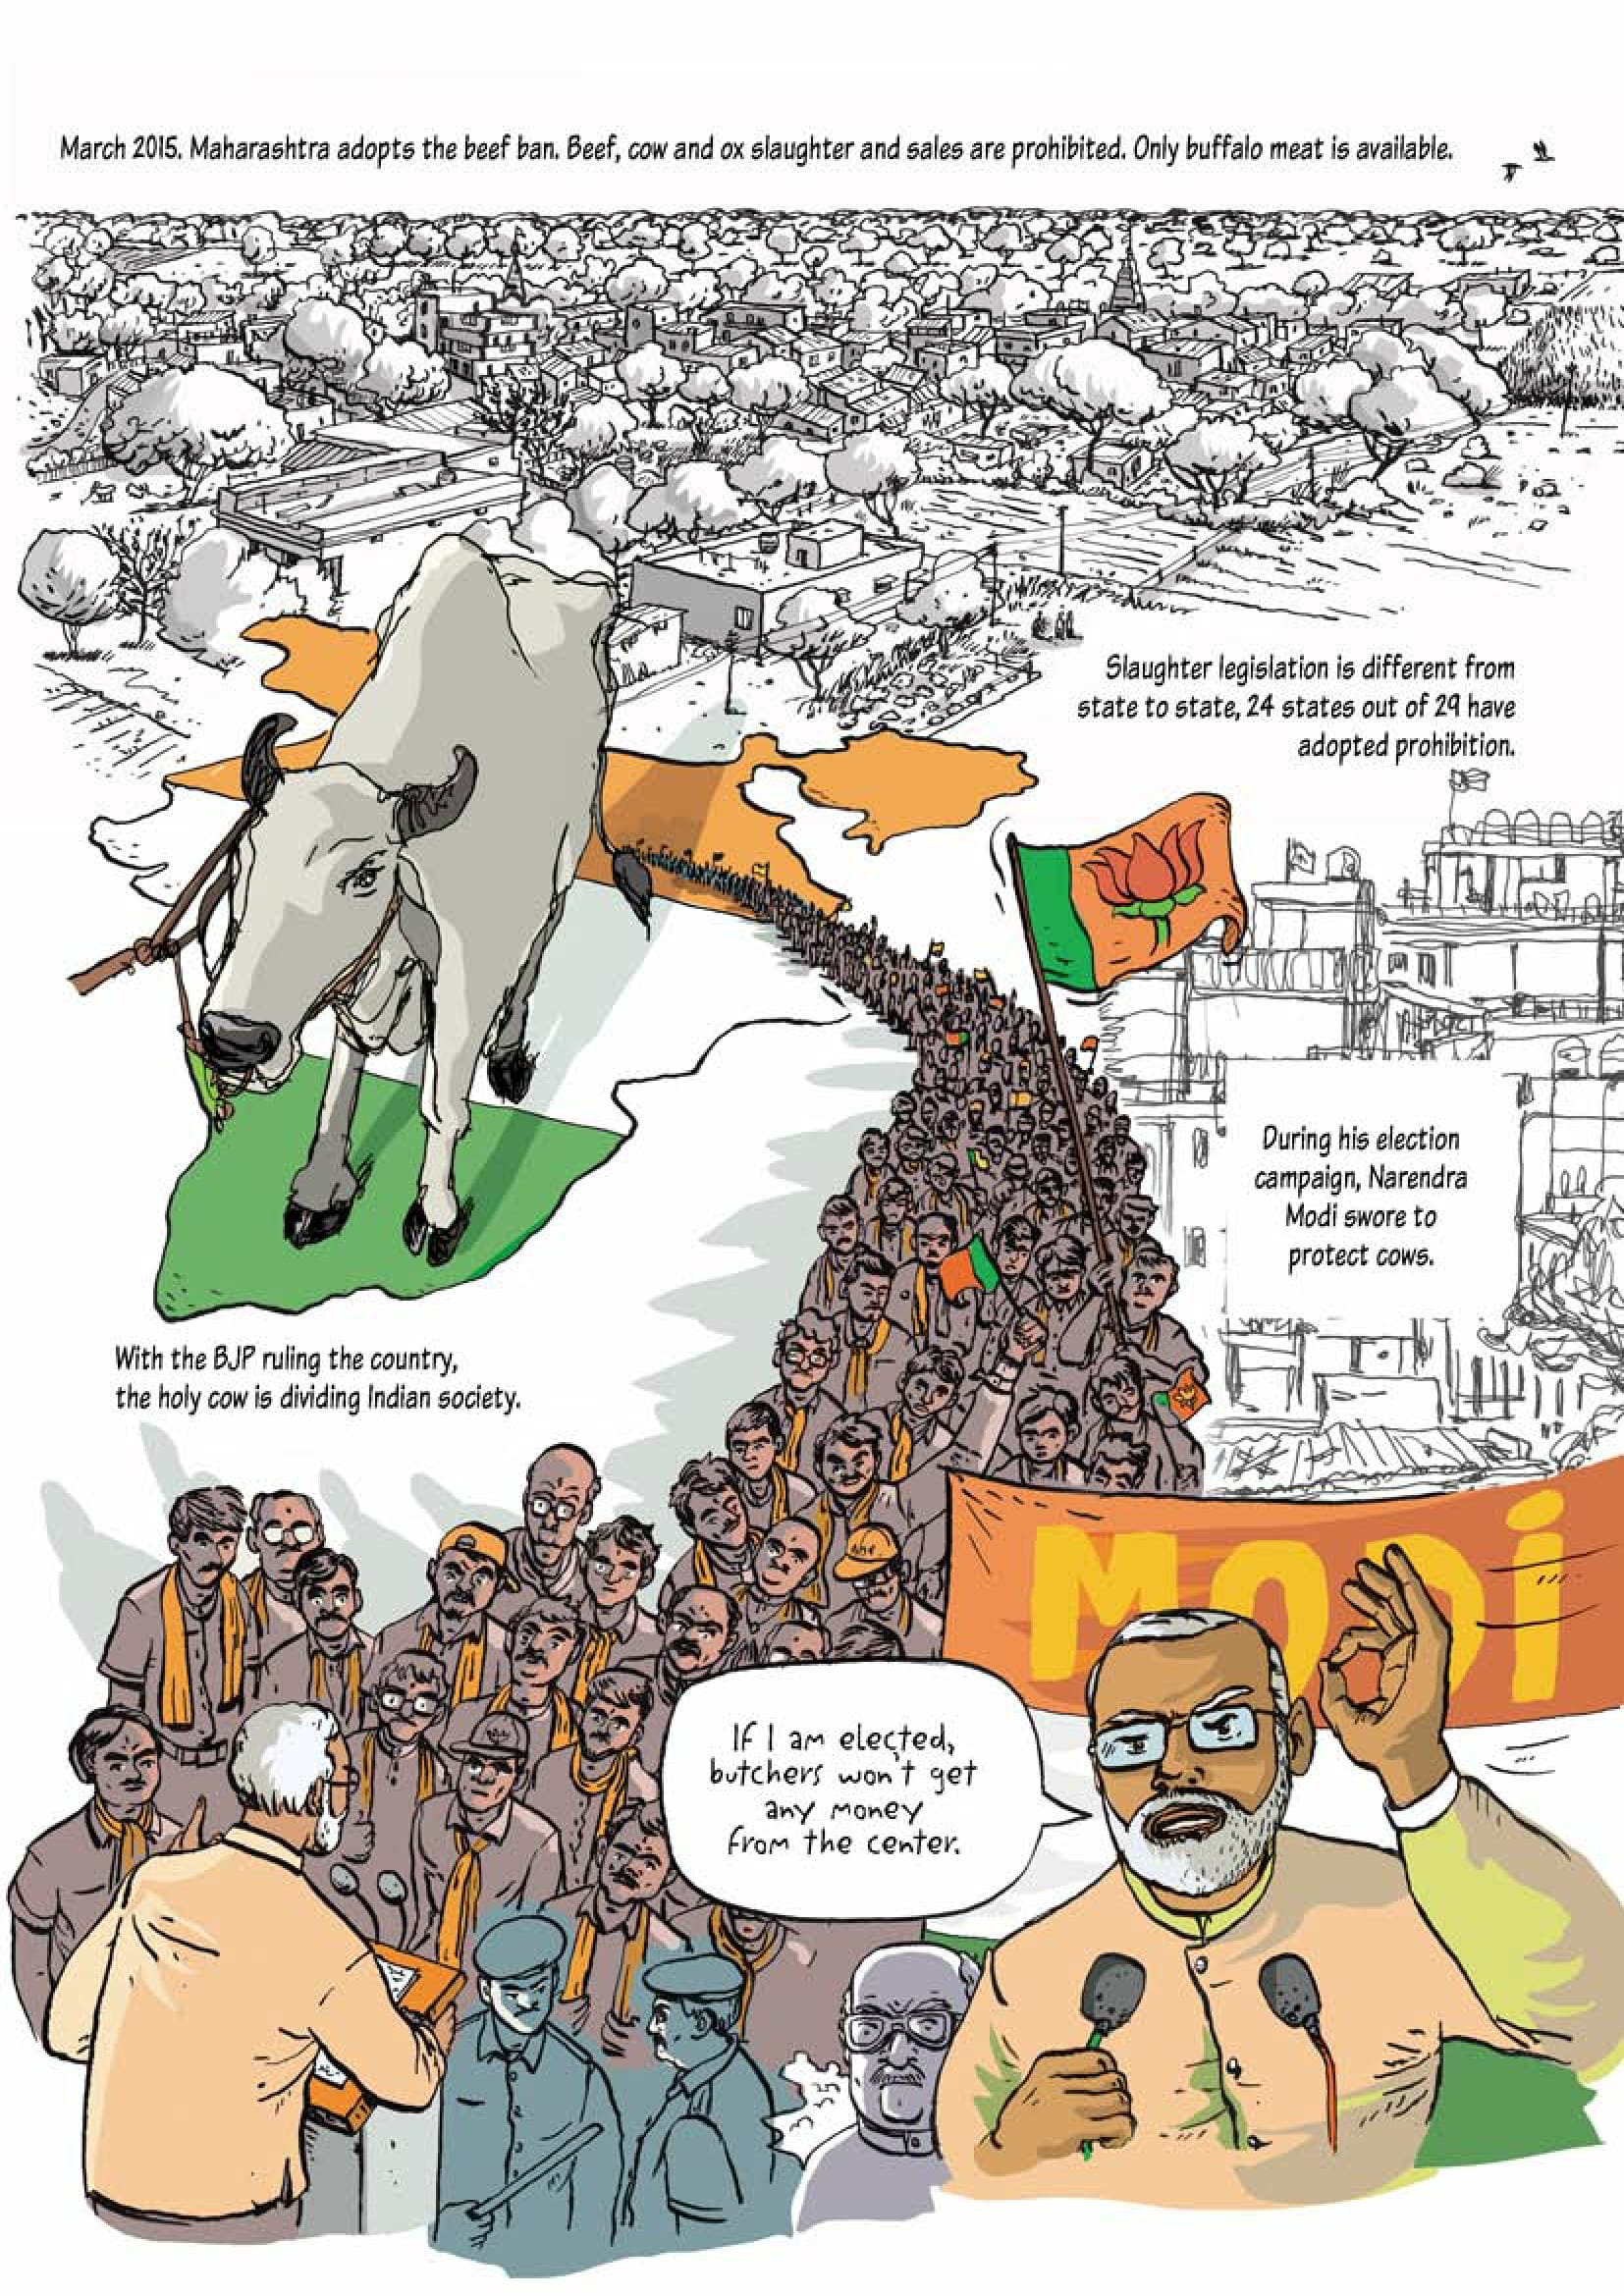 A French Comic Book Illustrates Hindutvas War On Beef And Its